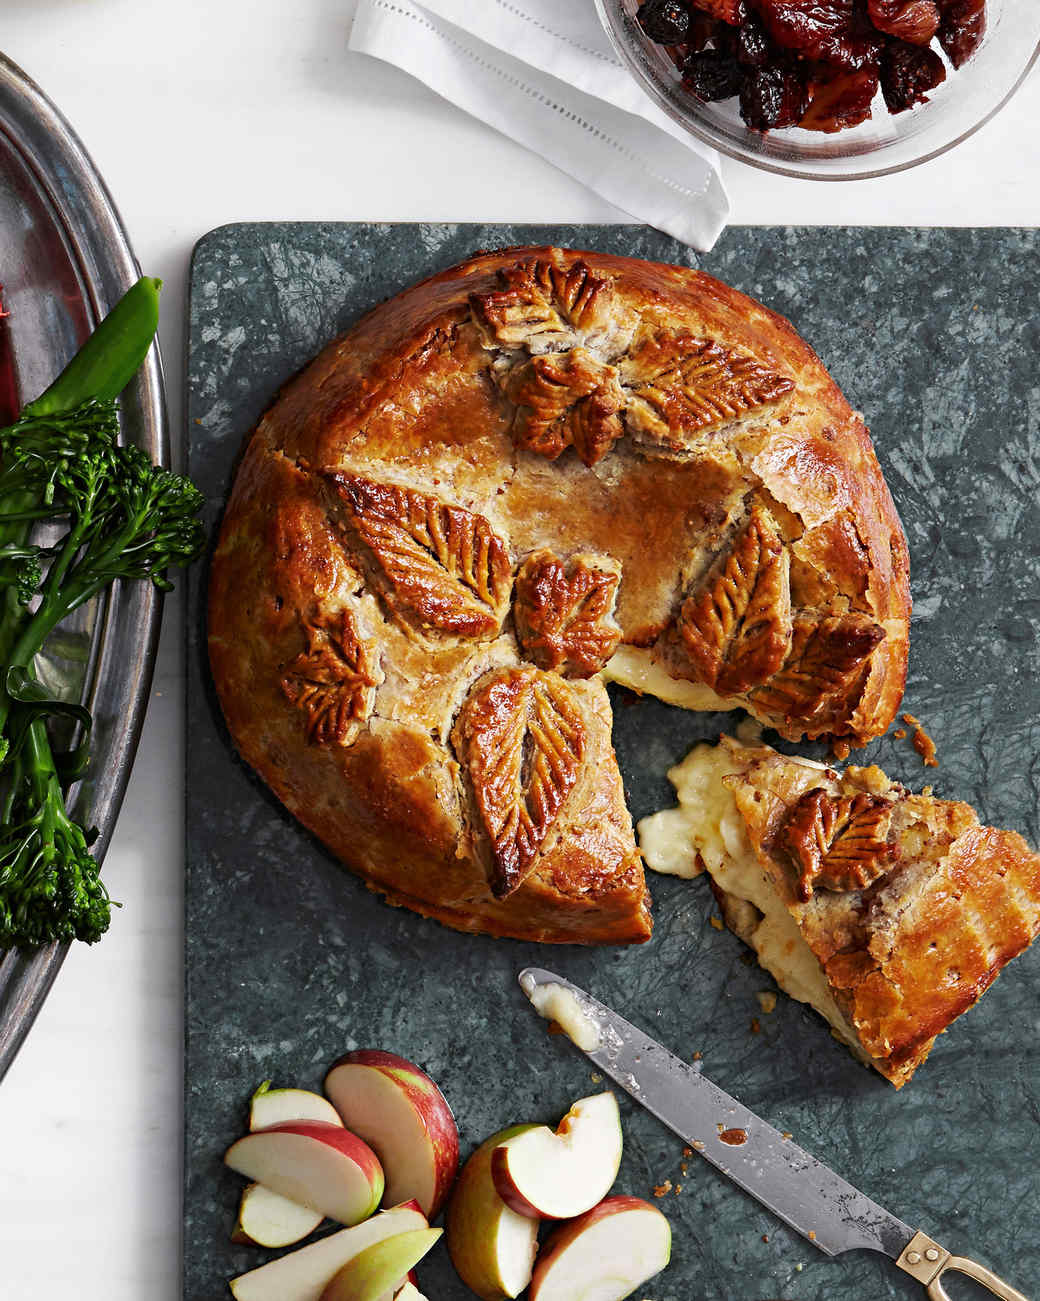 Baked Brie with Boozy Fruit